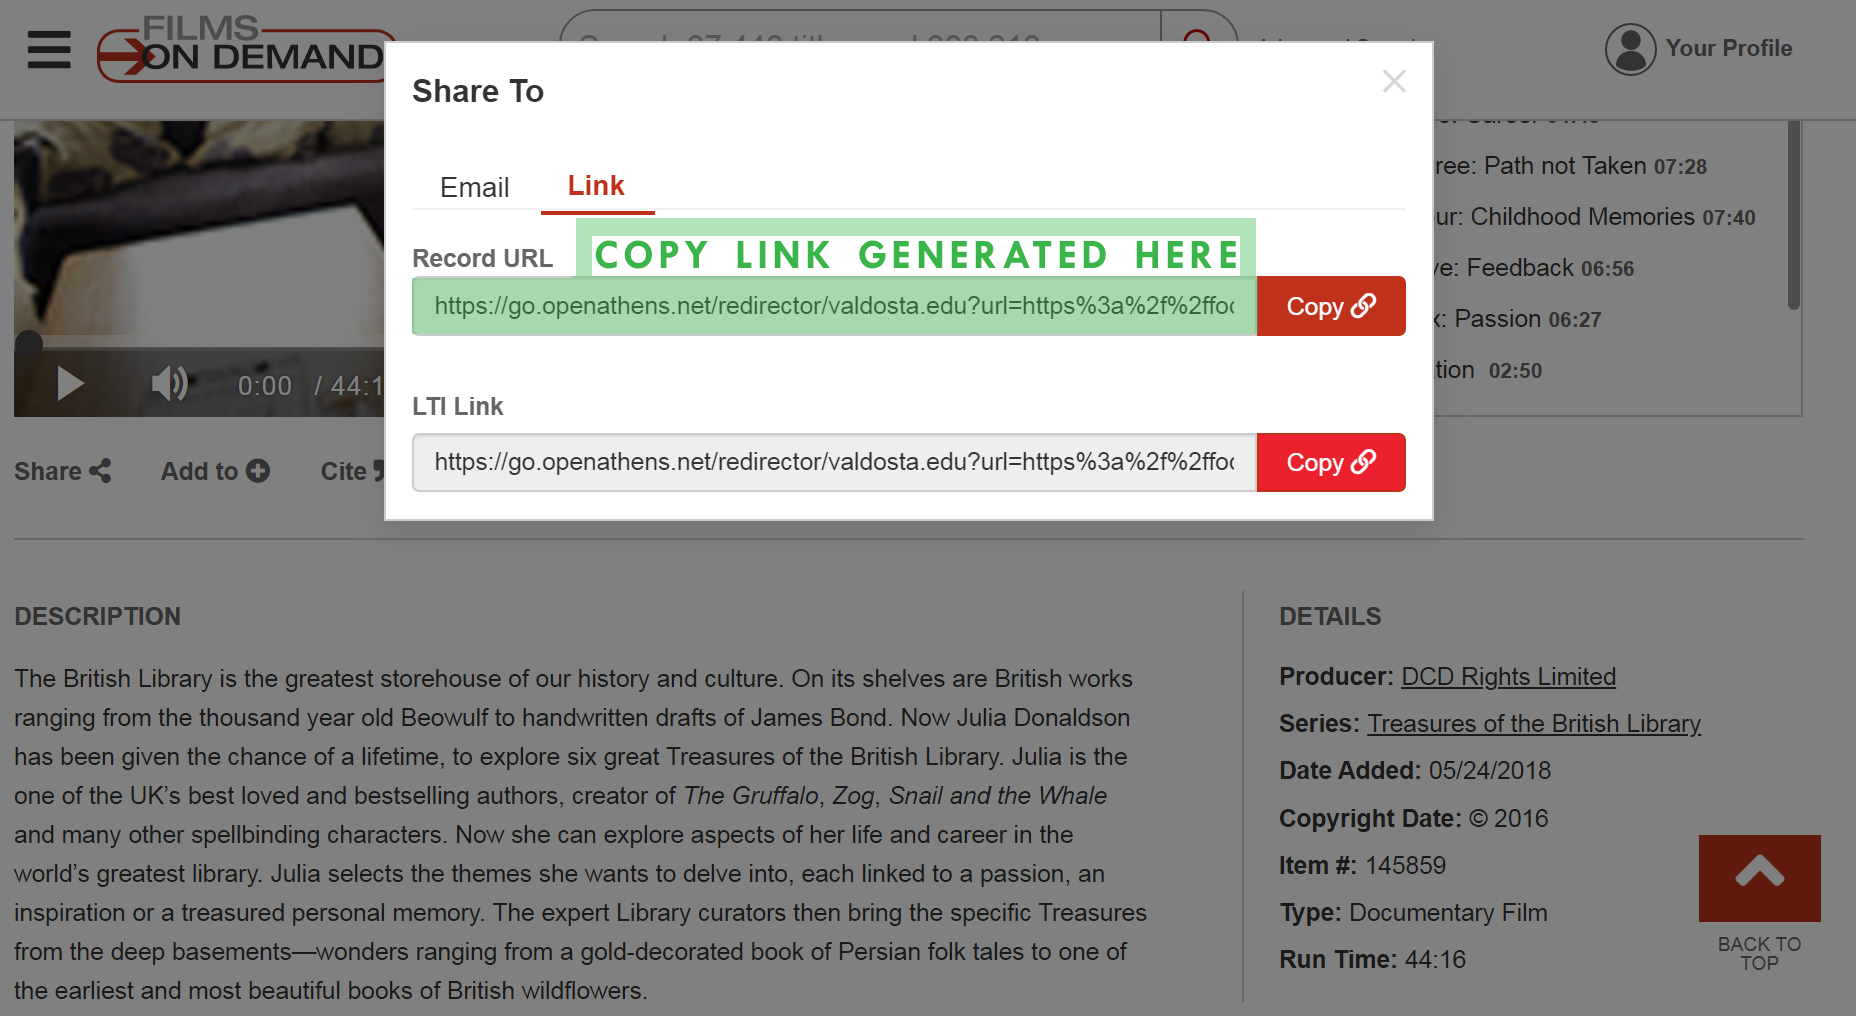 Copy link generated in the Share window